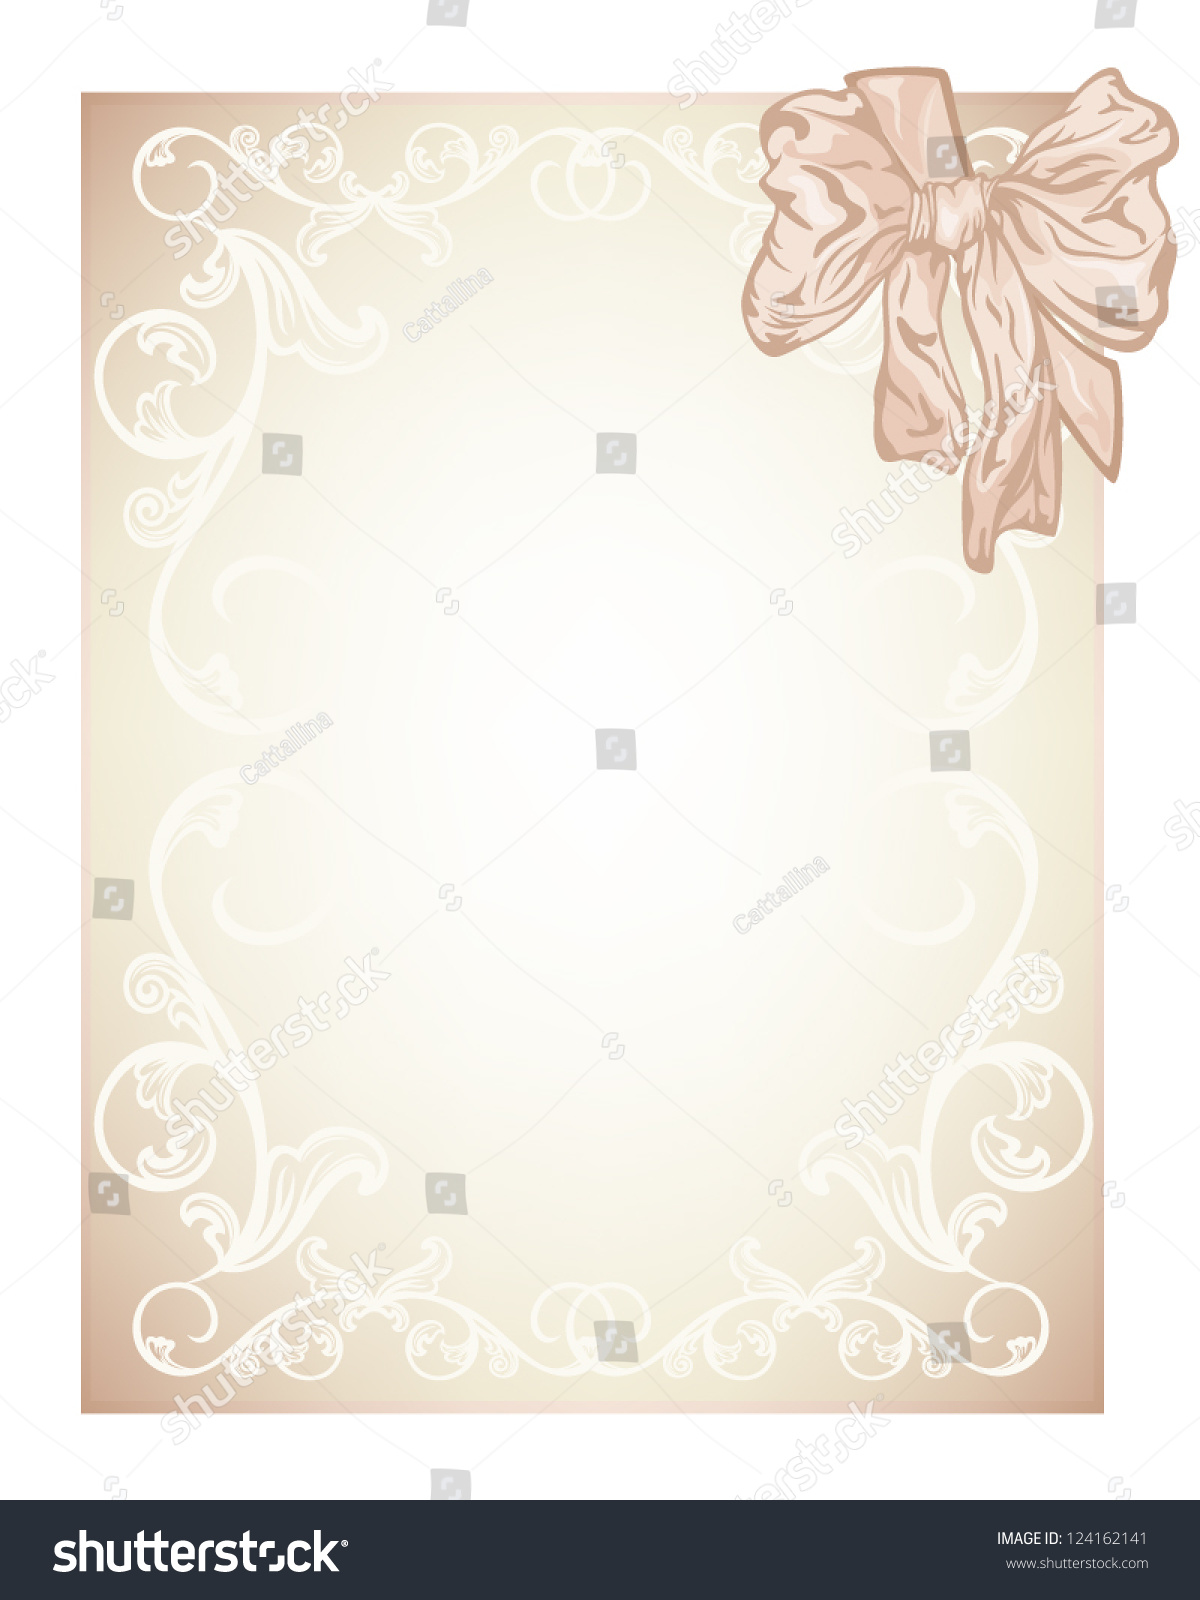 Blank indian wedding invitation cards yaseen for invitation cards plain background elegant beige blank for wedding stopboris Image collections